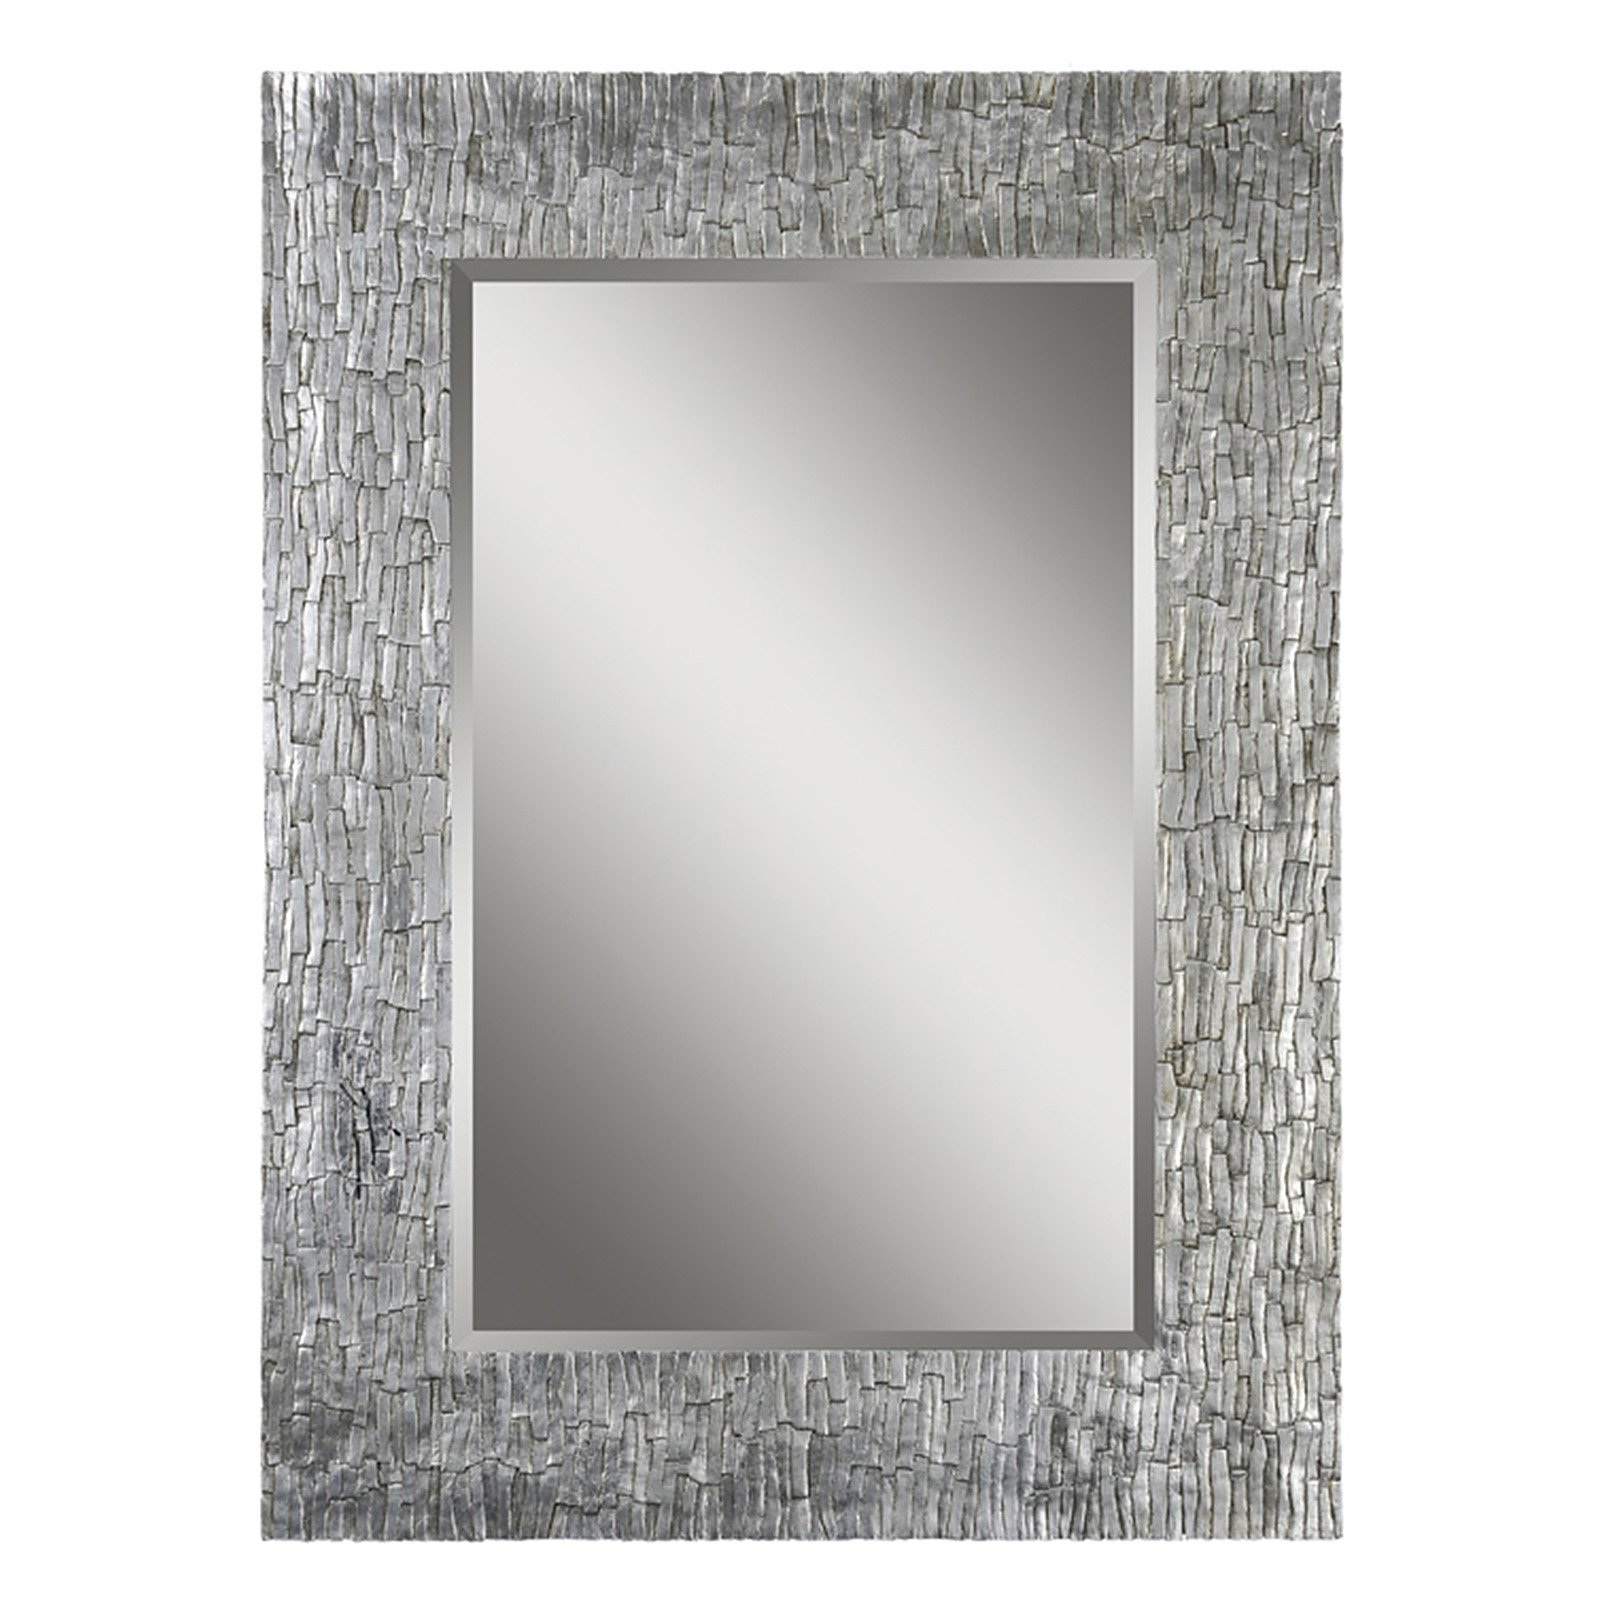 Ren Wil Santa Fe Wall Mirror 36w X 49h In Rectangular Mirror